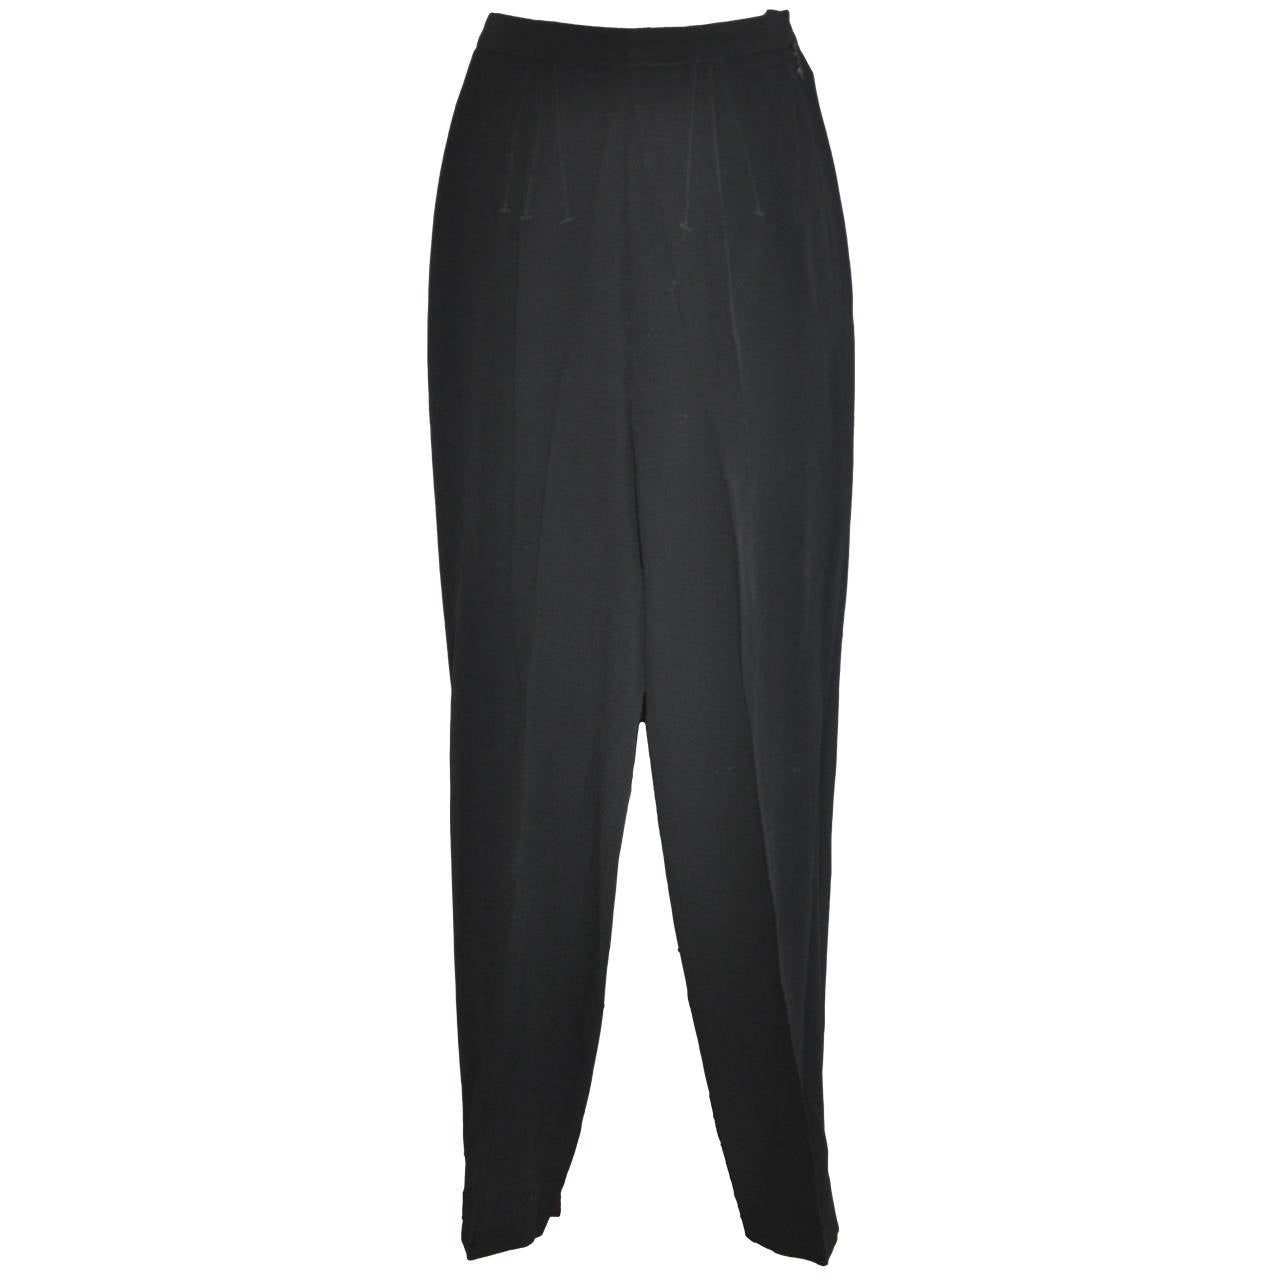 Jean Paul Gaultier Black Pencil Style Embroidered Detailing Trouser 1